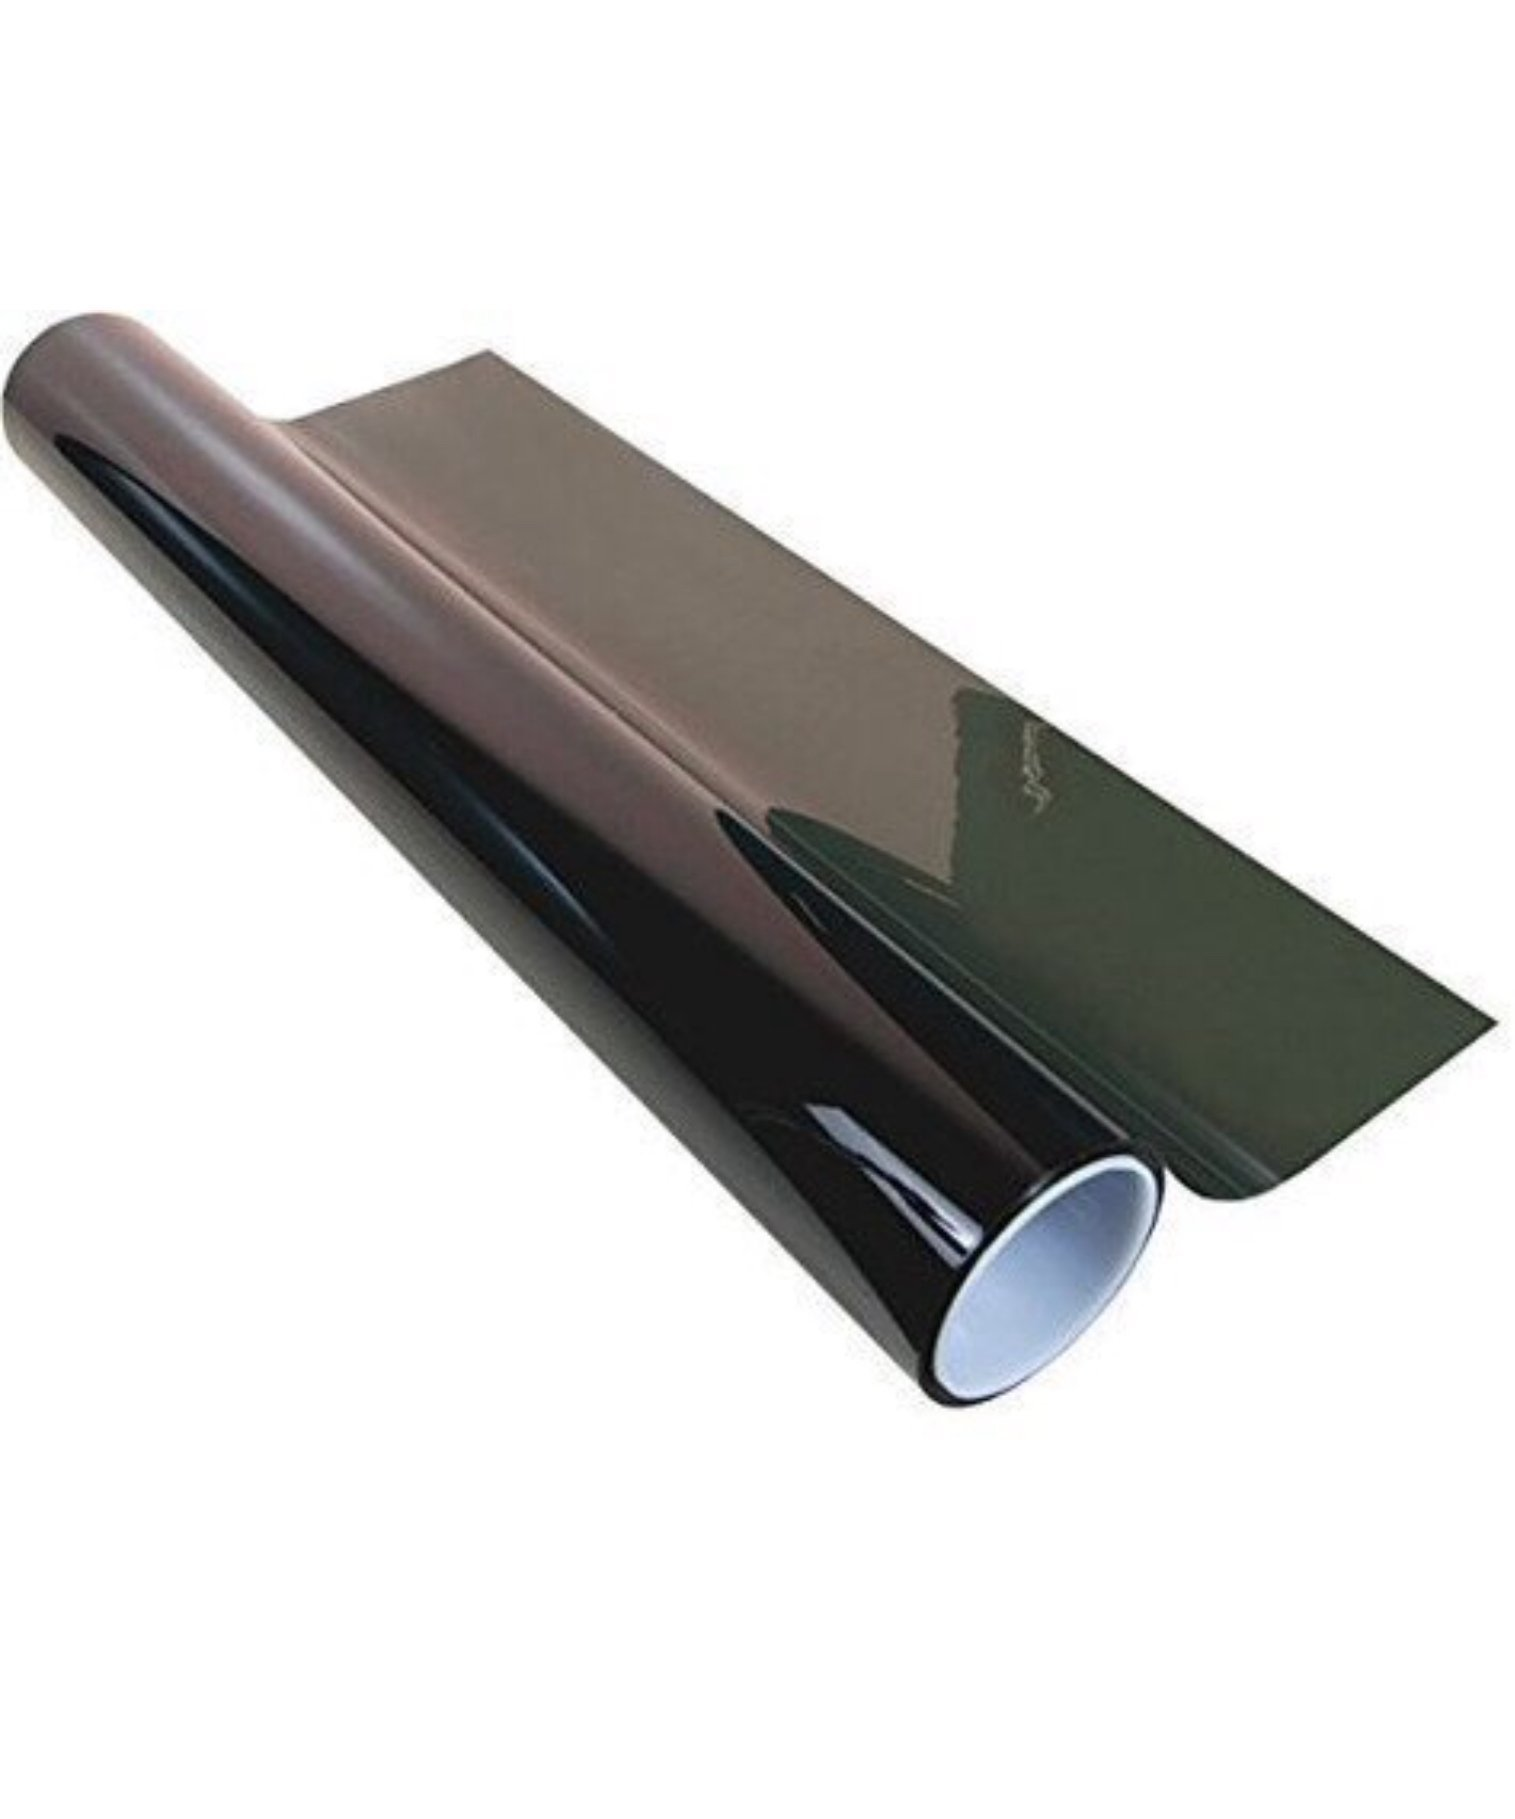 Diablo 2 Ply Window Tint Double Ply Professional Dark Charcoal 35% Tint Roll Self Adhesive Tint Film Roll for Car Windows - 36 in. x 100 ft.